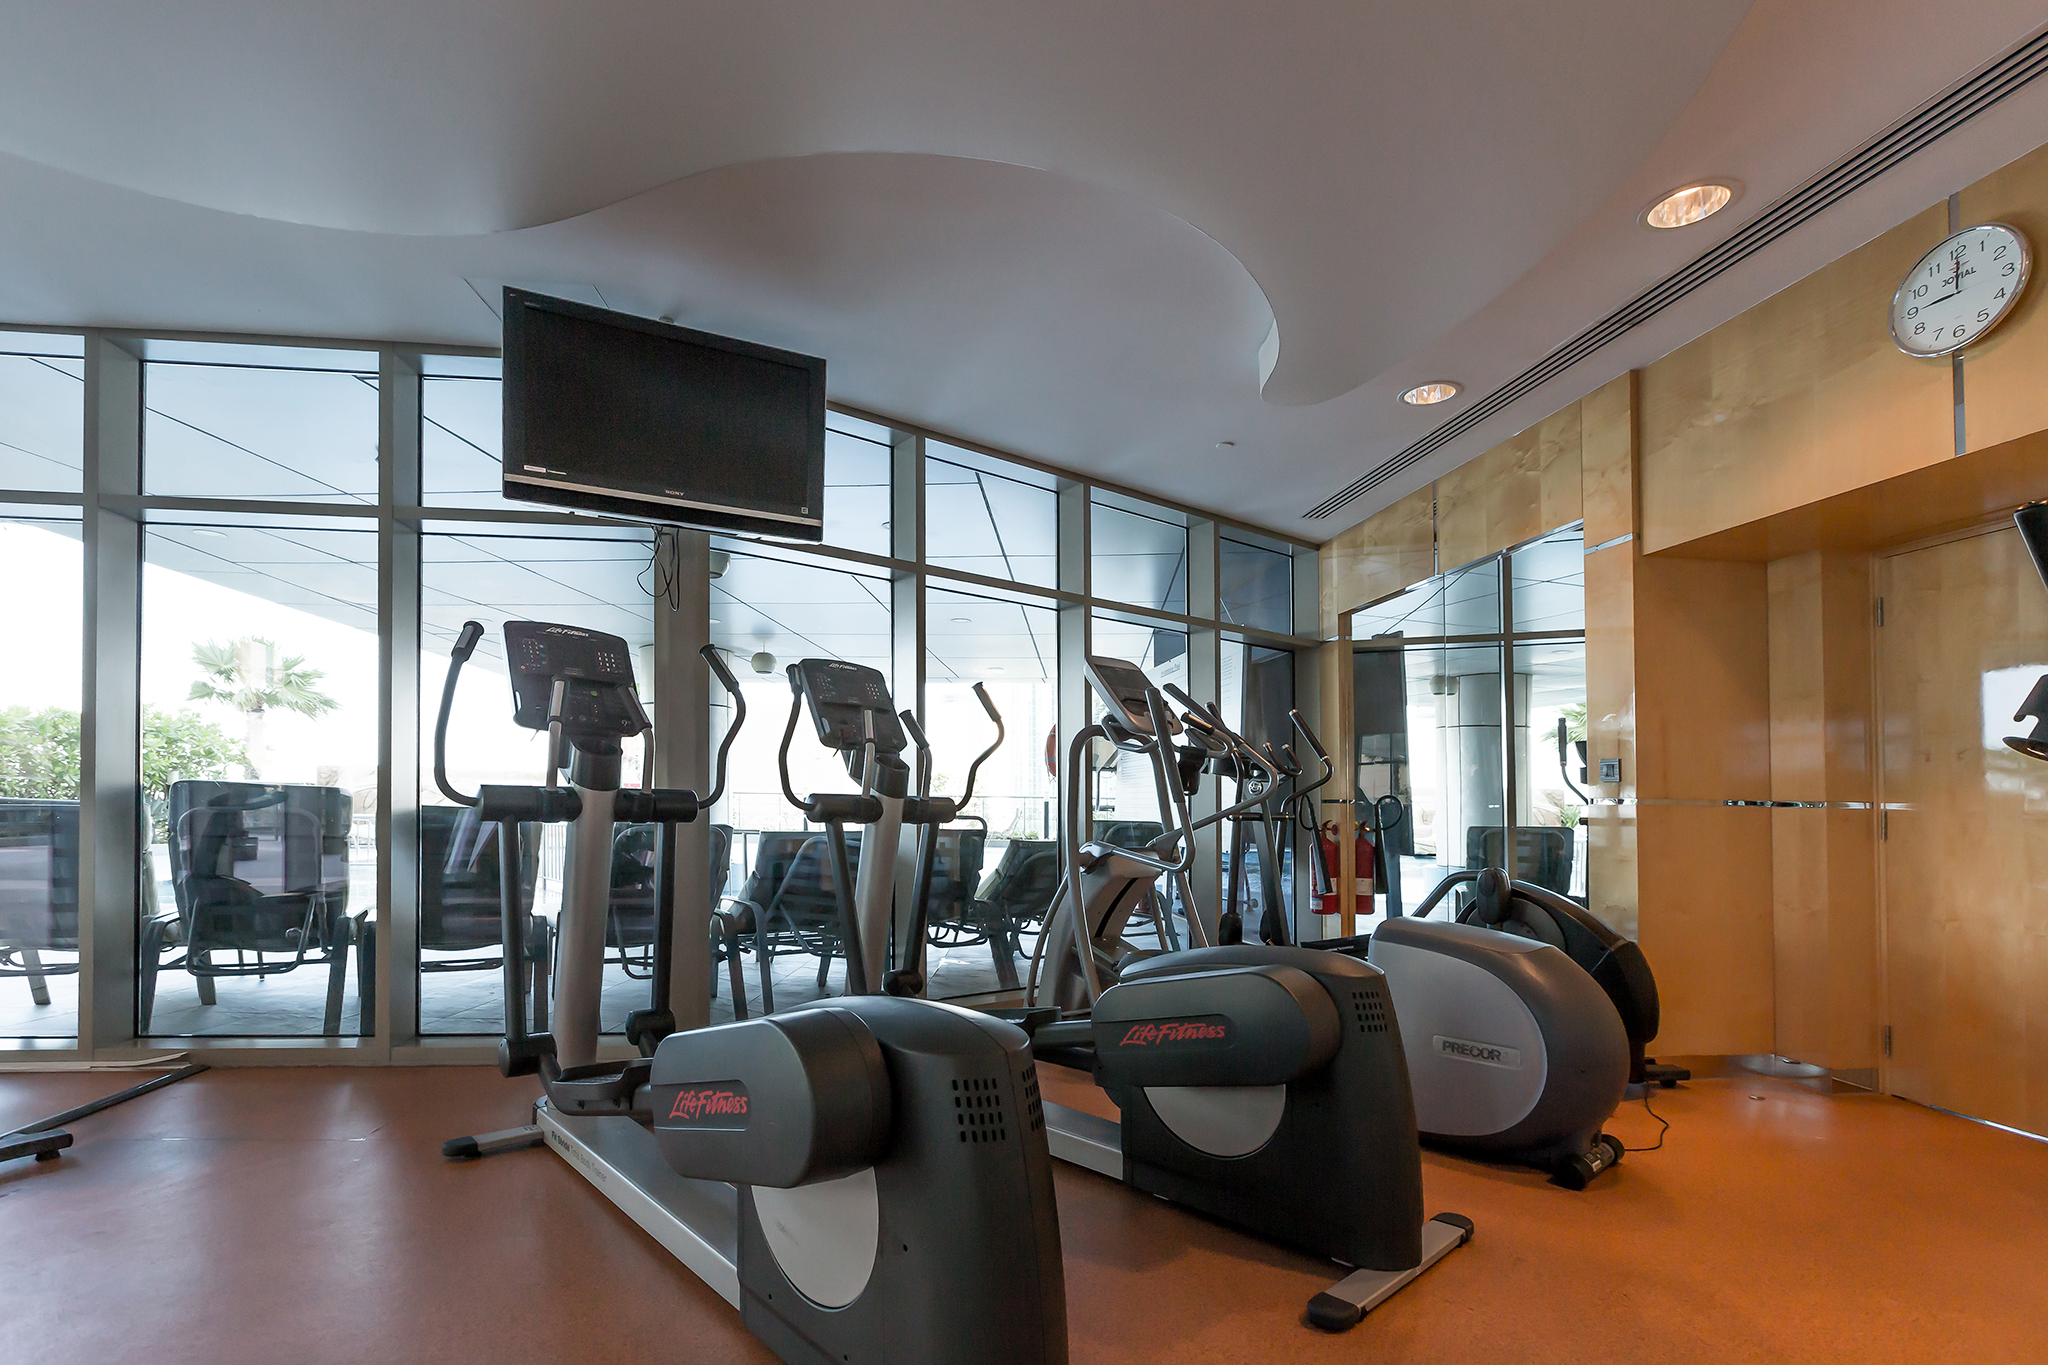 There is a fully equipped gym in the property, perfect for cardio, weights and stretching exercises